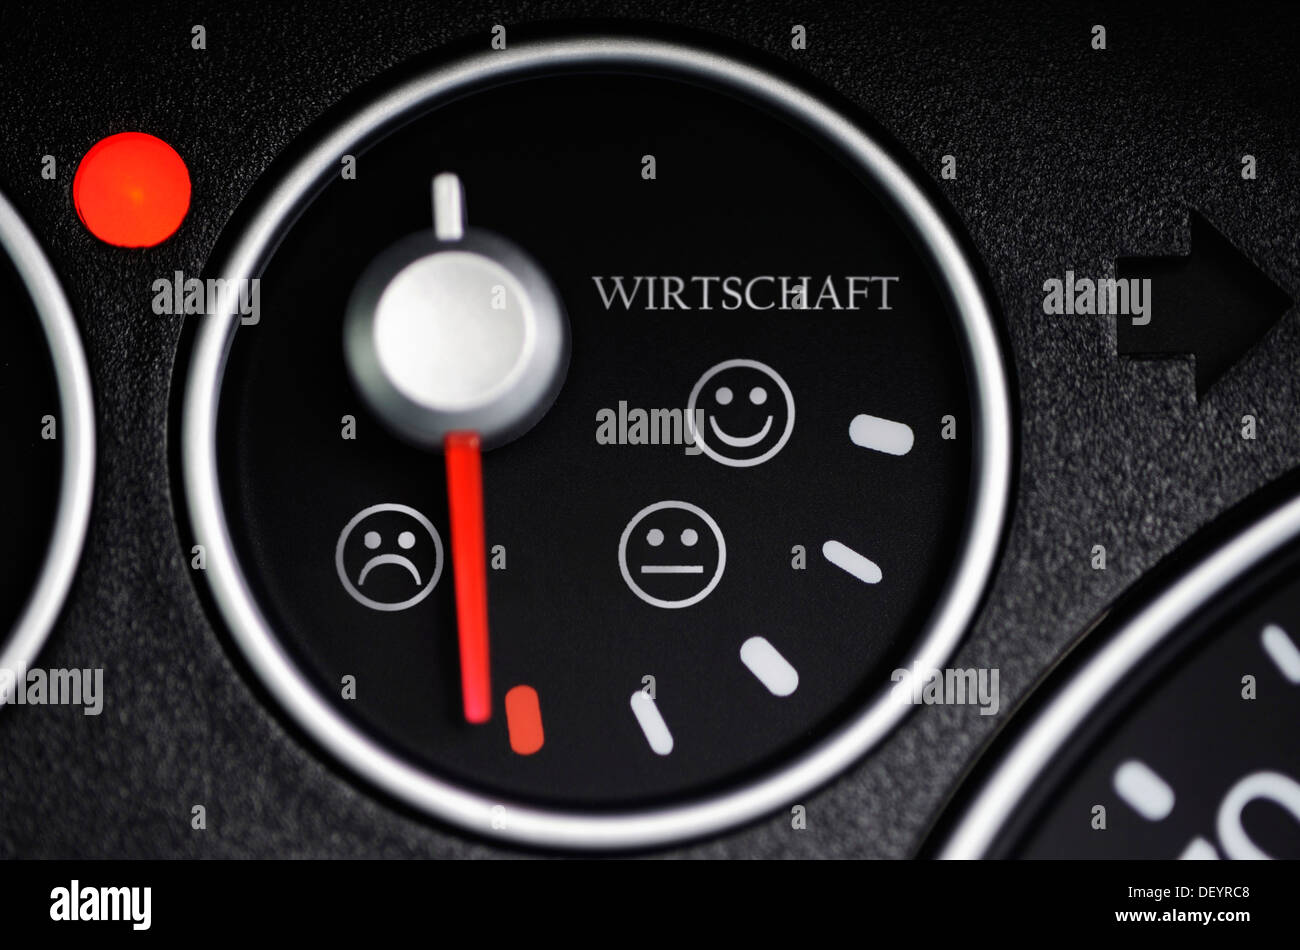 Fuel gauge with smiley faces, lettering 'Wirtschaft', German for 'economy', economic indicator, symbolic image - Stock Image